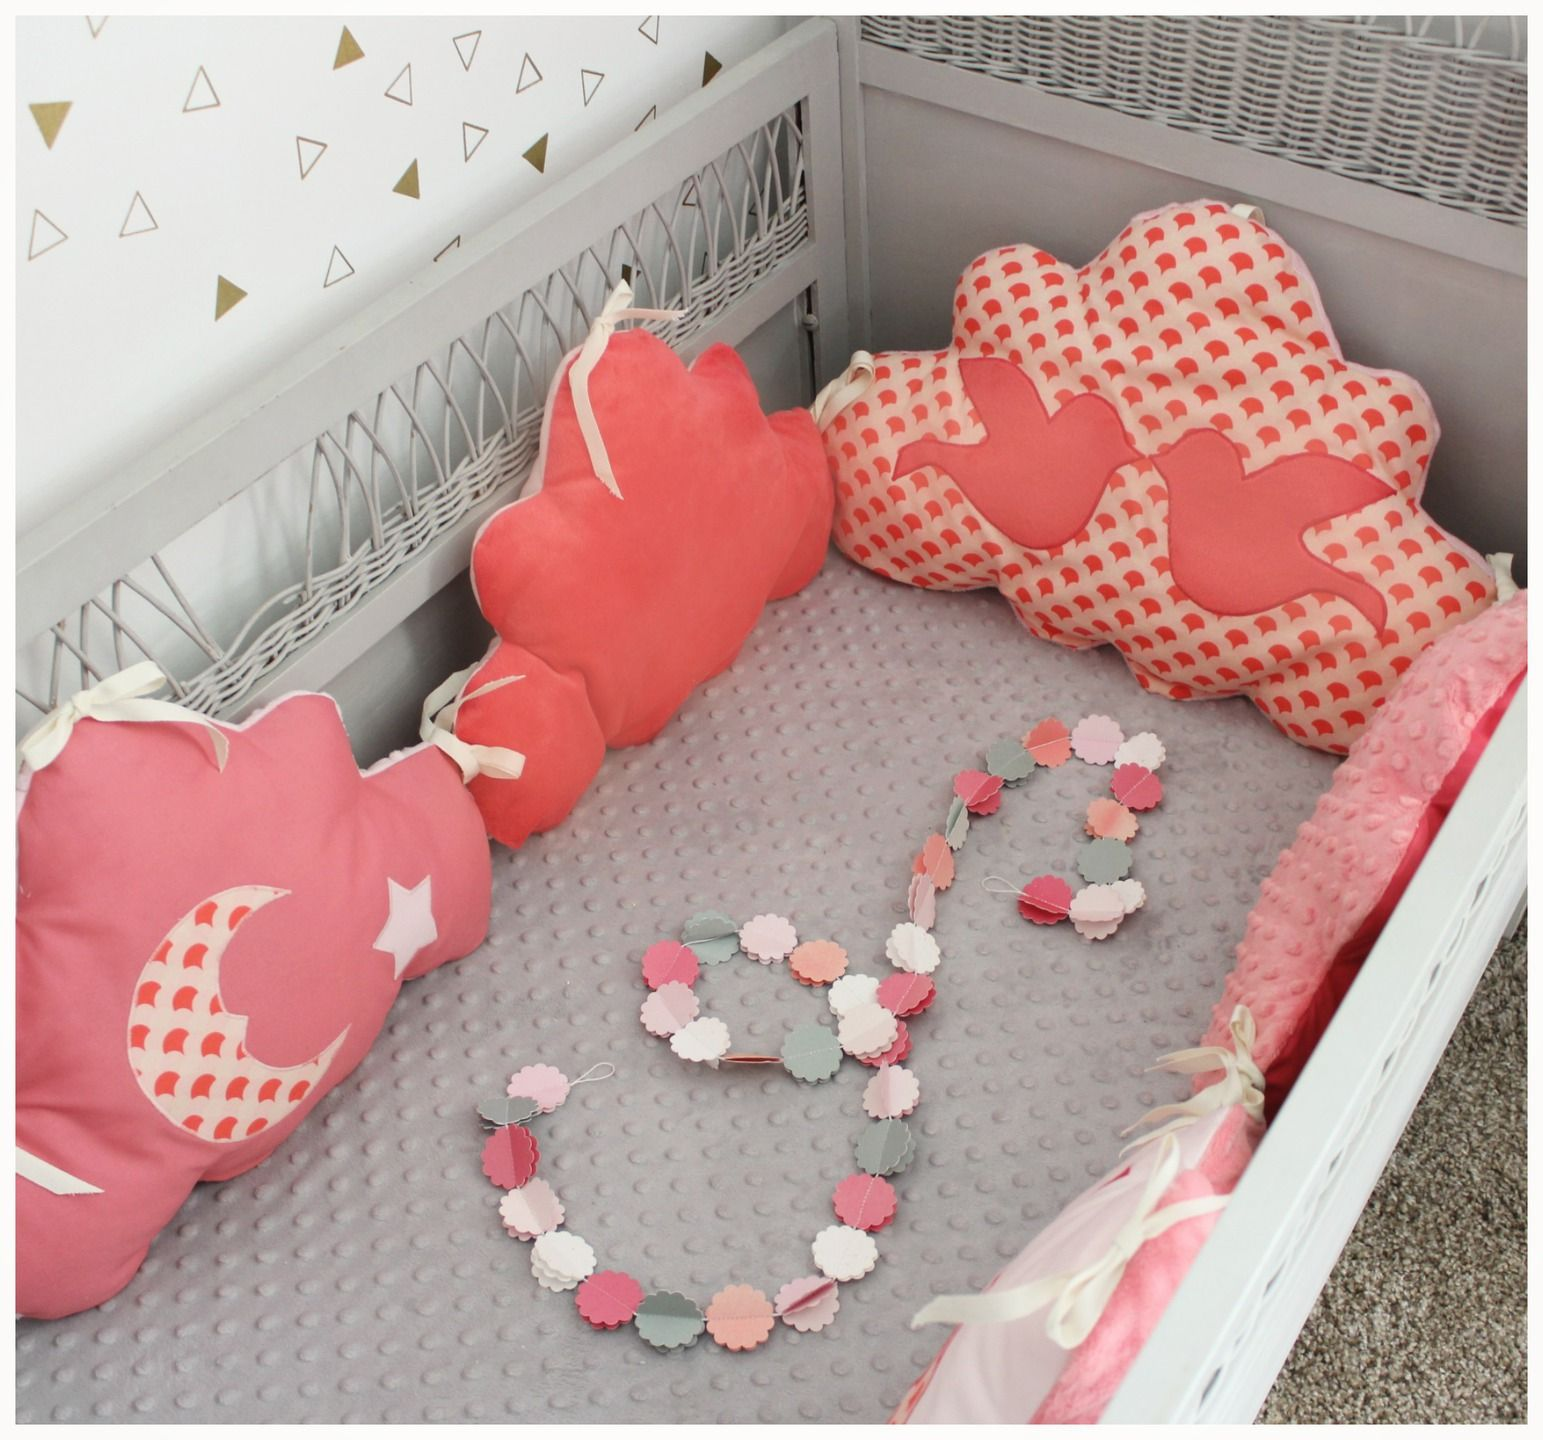 tour de lit nuage th me oiseau corail et rose pale tour. Black Bedroom Furniture Sets. Home Design Ideas